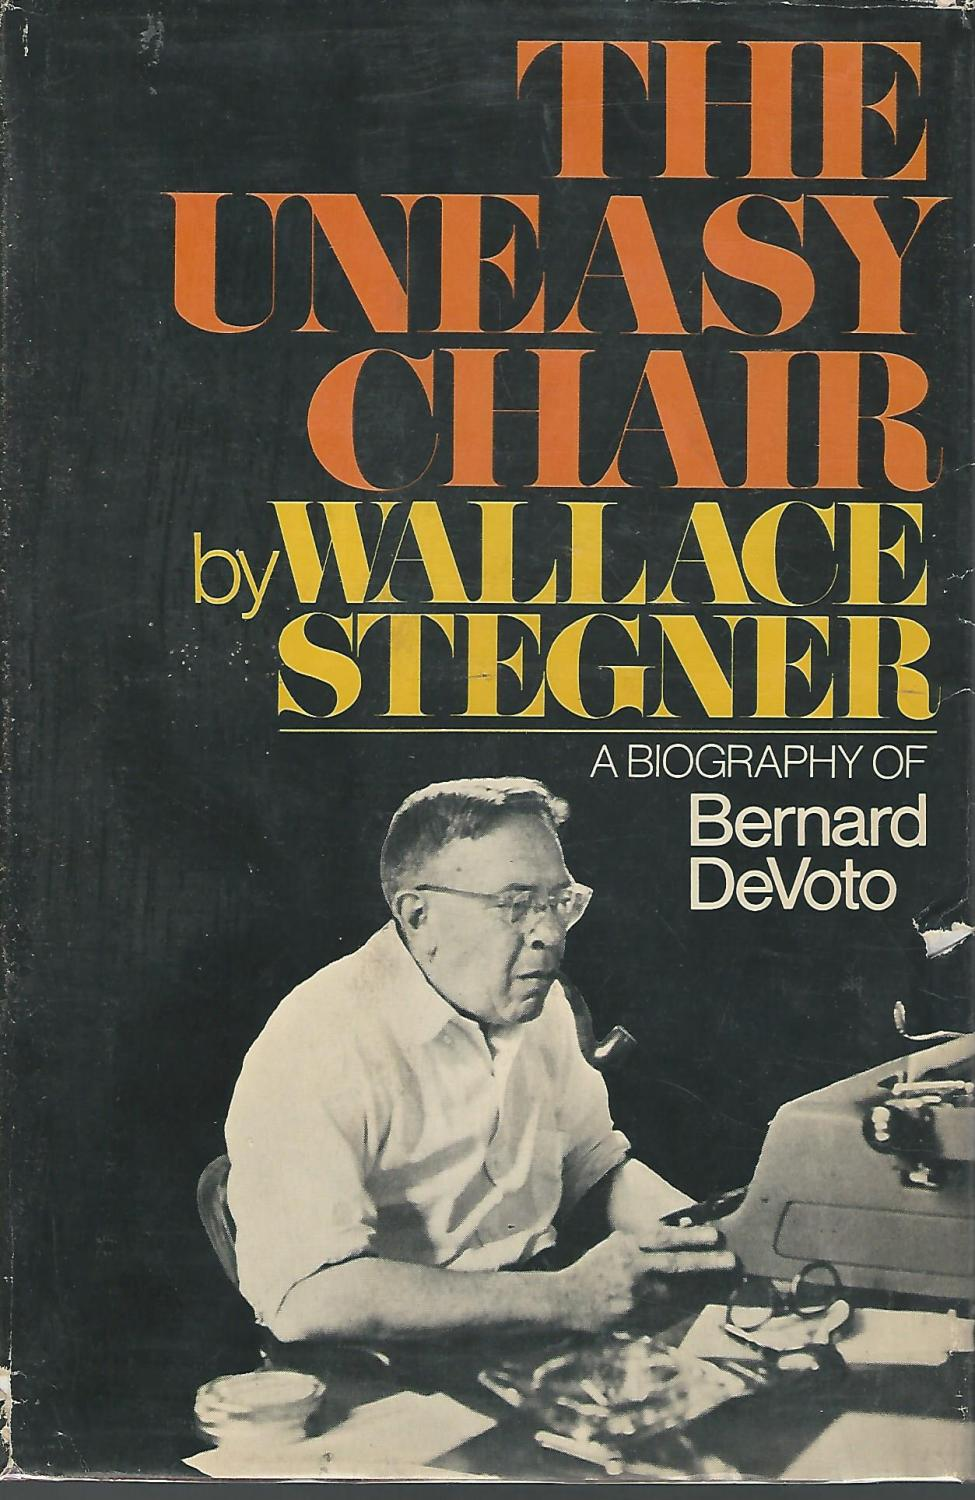 cover of The Uneasy Chair A Biography of Bernard DeVoto by Wallace Stegner